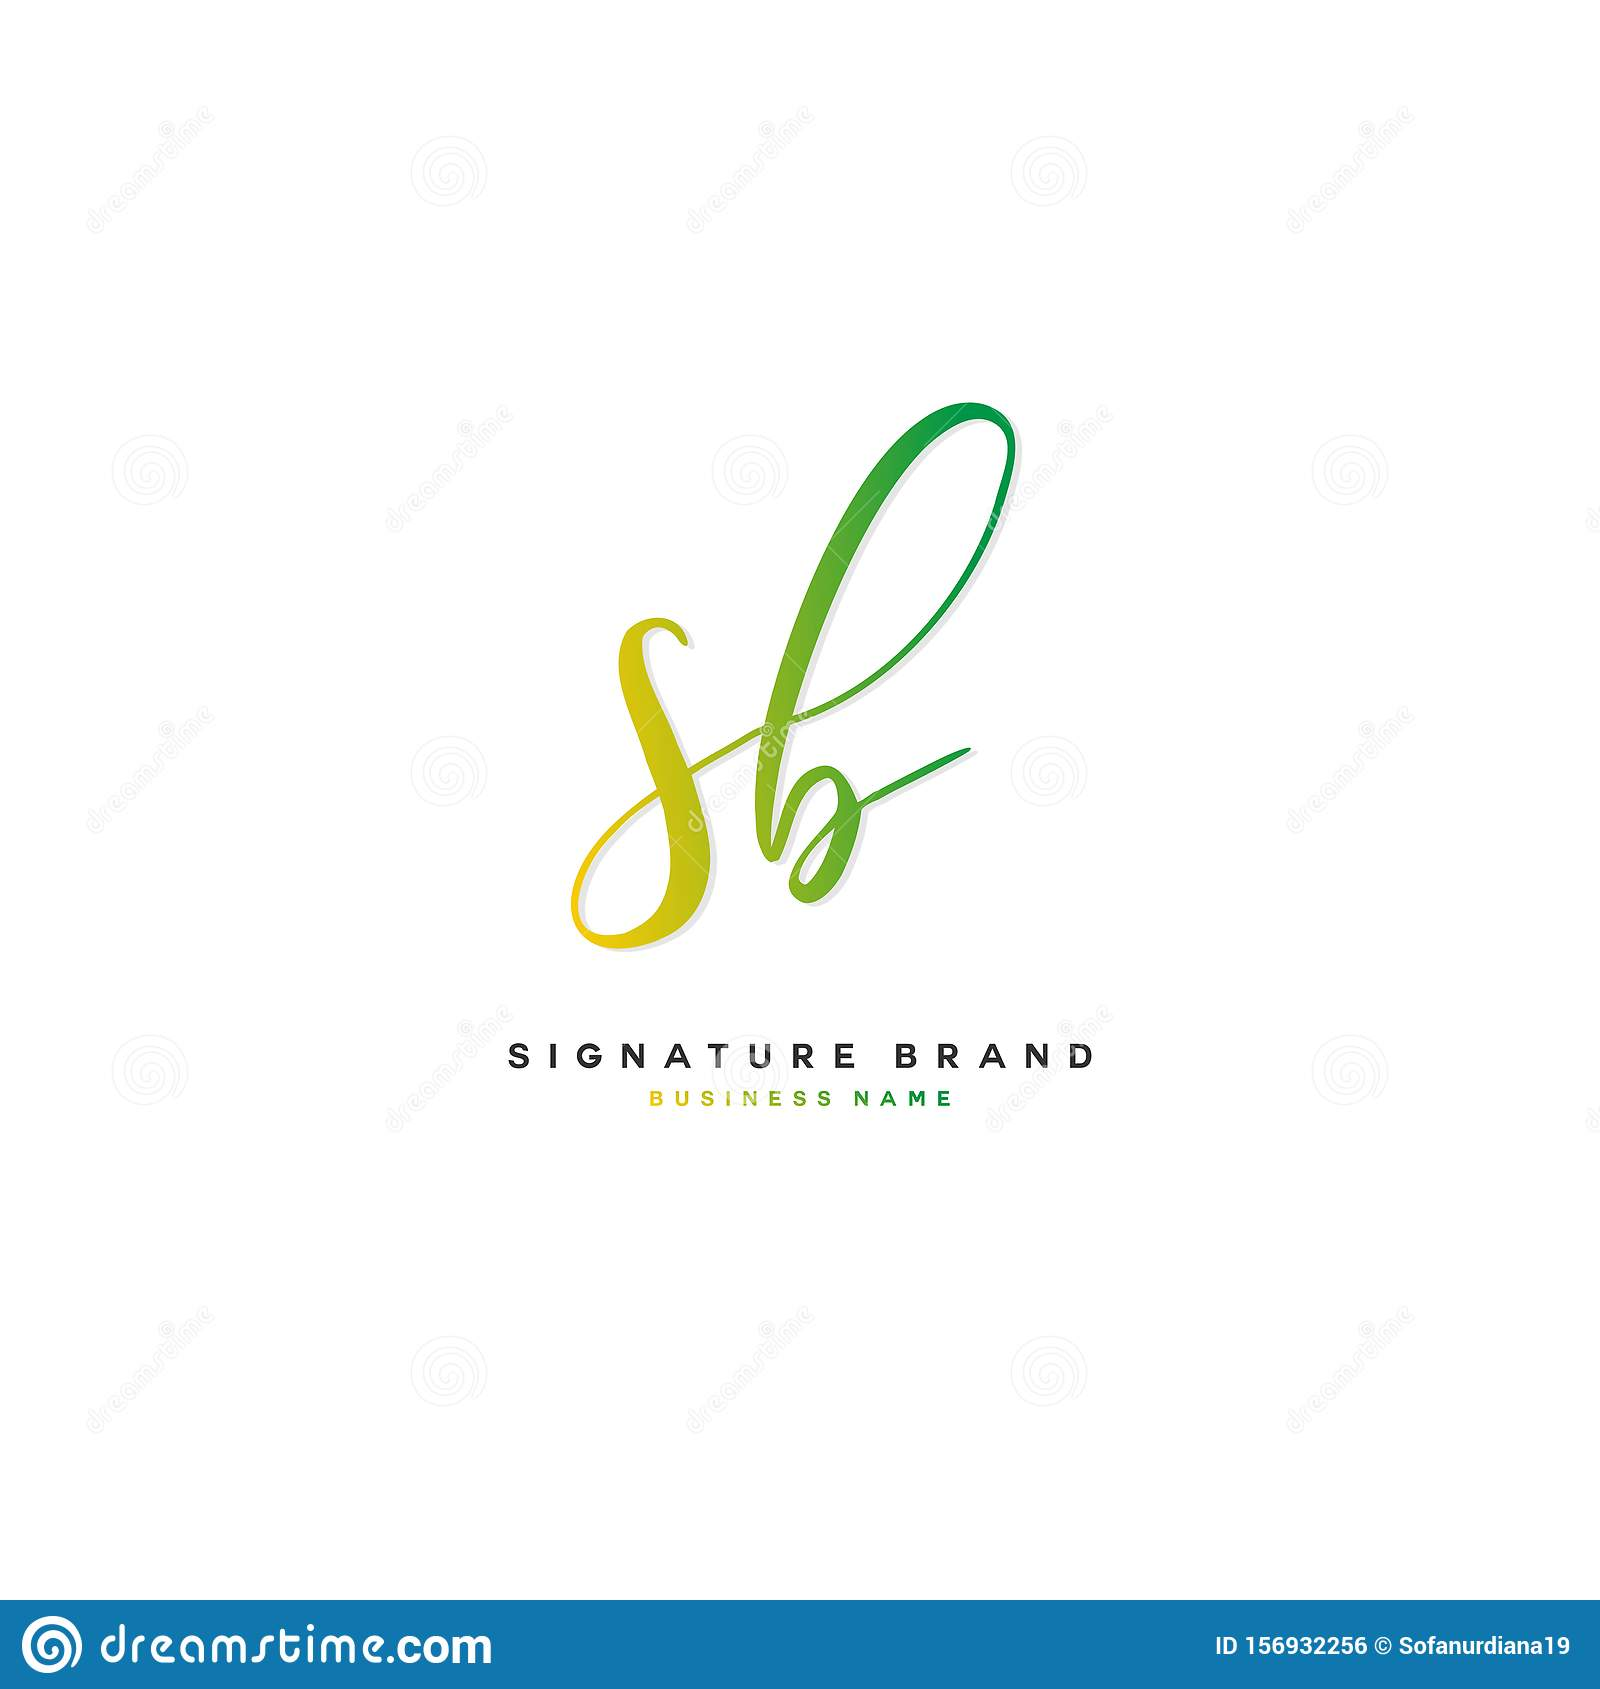 Sb Initial Letter Handwriting And Signature Logo Concept Design Stock Vector Illustration Of Icon Illustration 156932256